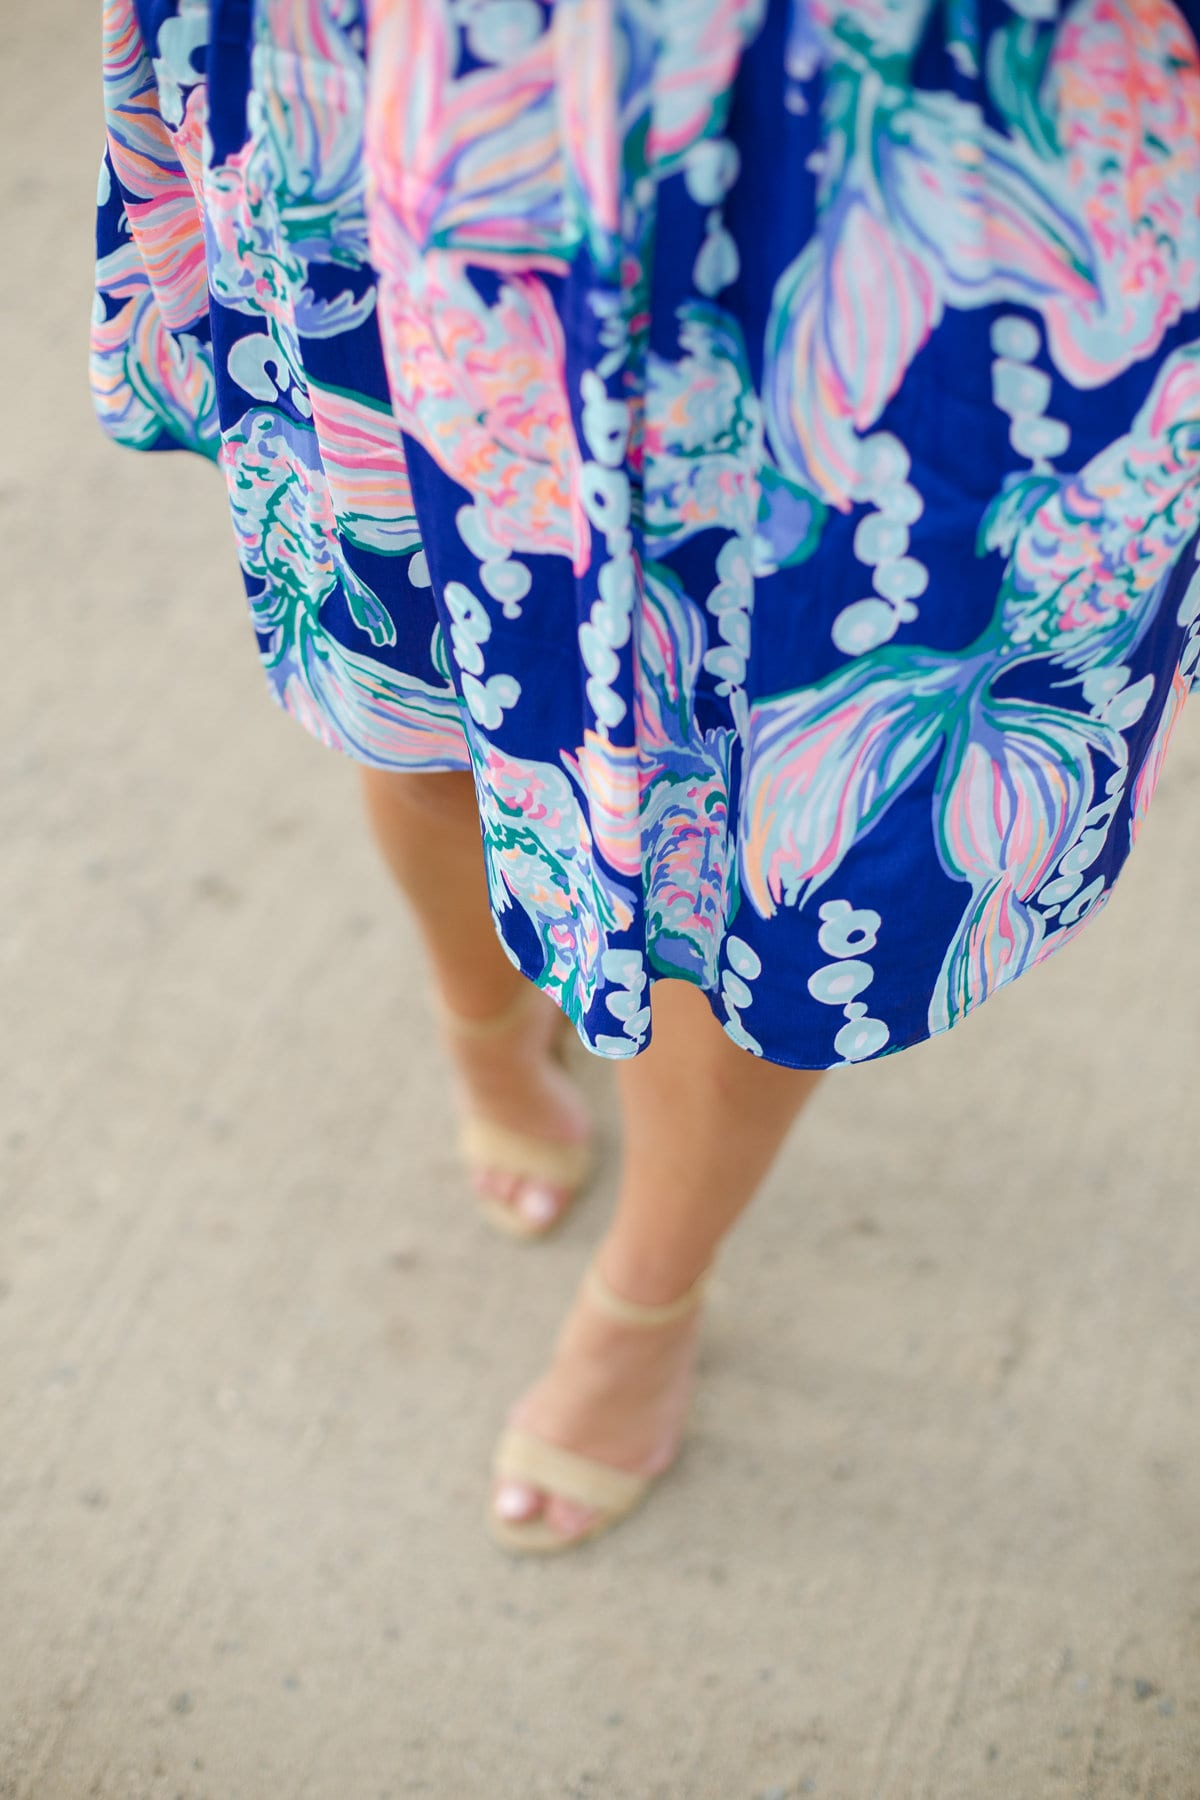 going coastal dress lilly pulitzer | Lilly Pulitzer Dress styled by popular San Diego fashion blogger, The Brunette & The Beach